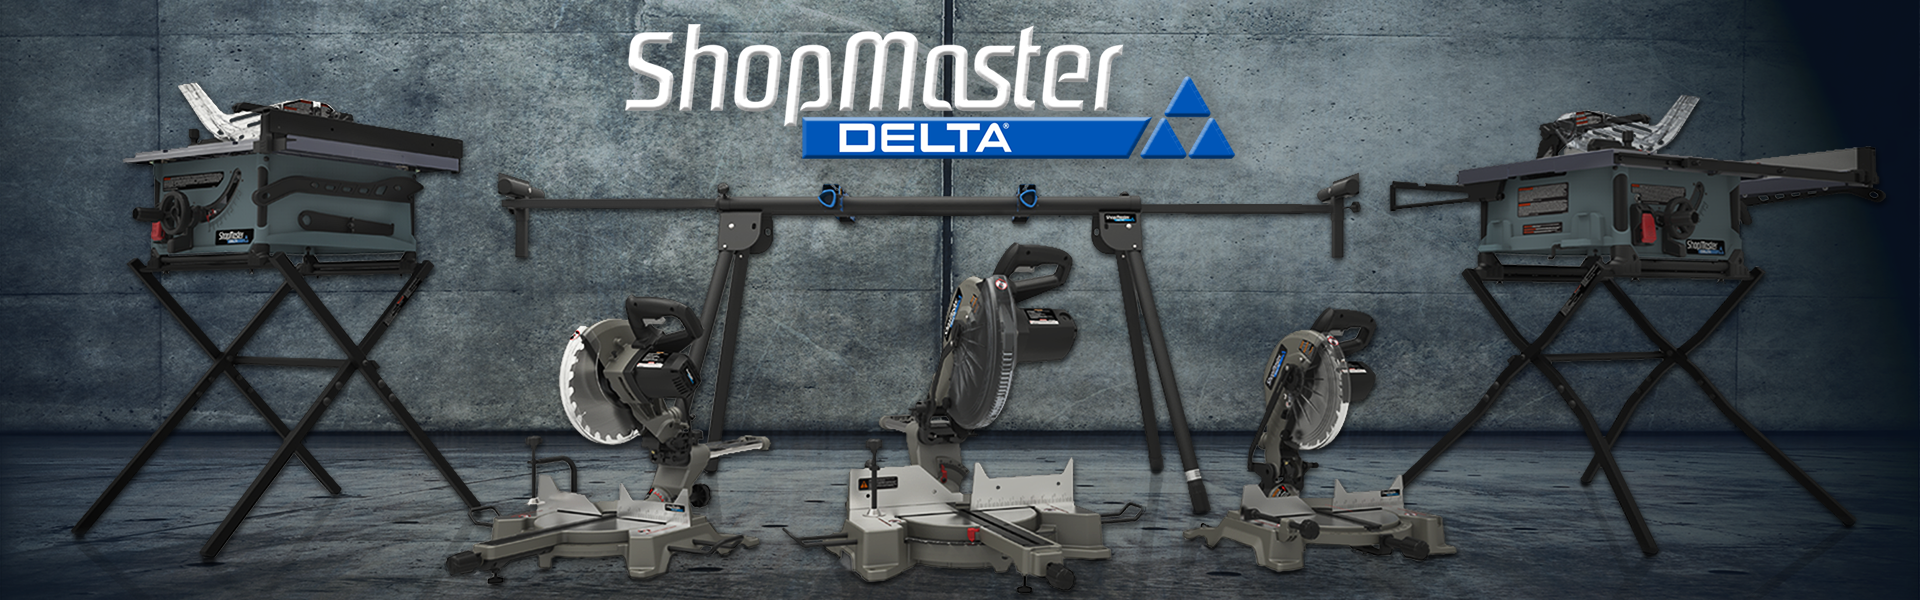 Delta Woodworking Tools Won't Do You Wrong